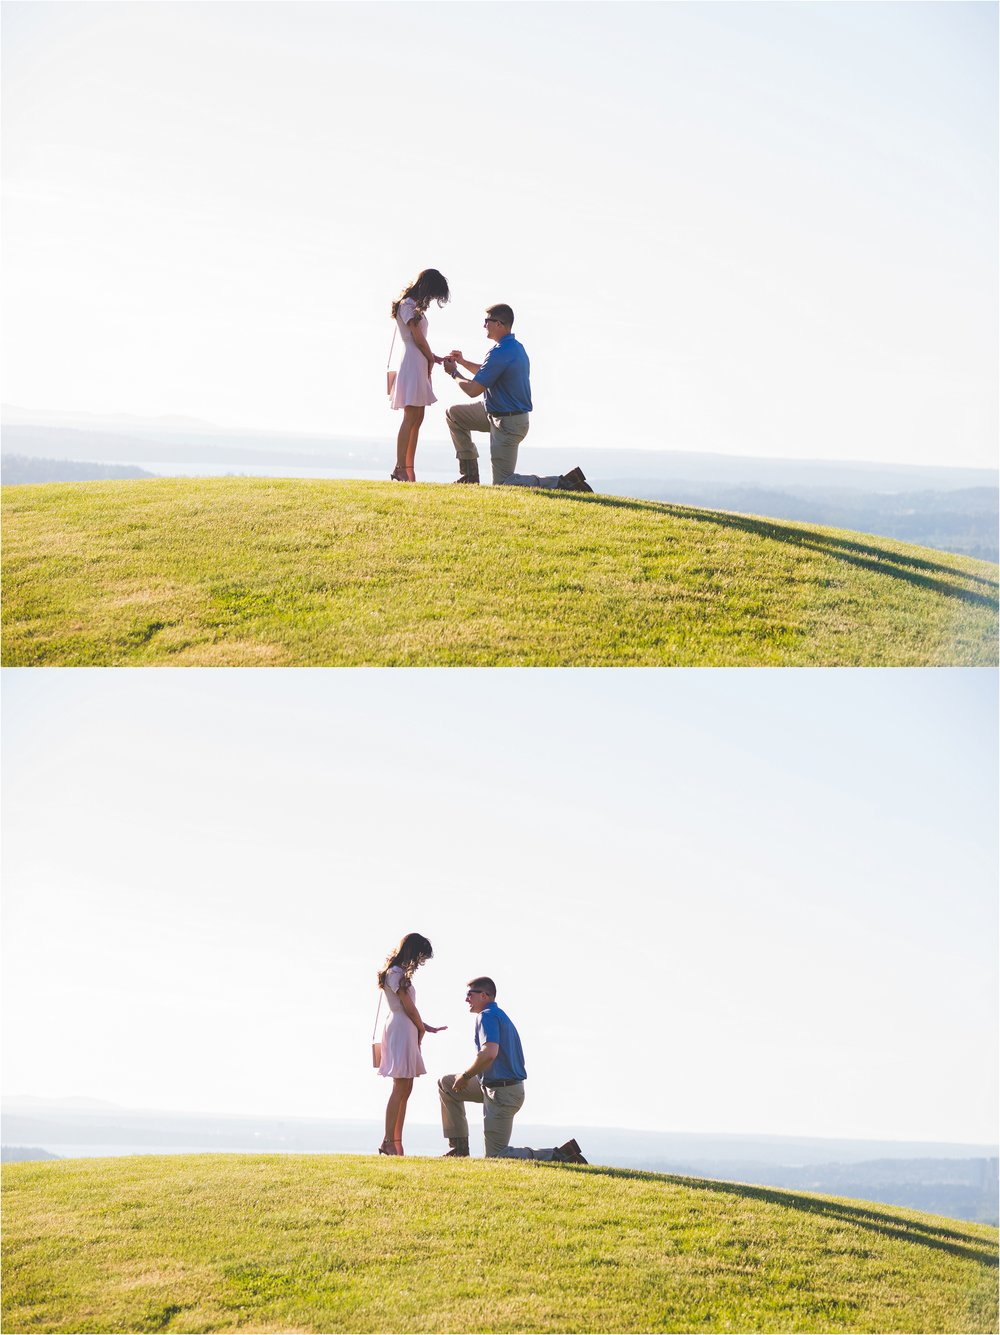 newcastle-golf-club-proposal-jannicka-mayte-seattle-washington-engagement-wedding-photographer_0005.jpg